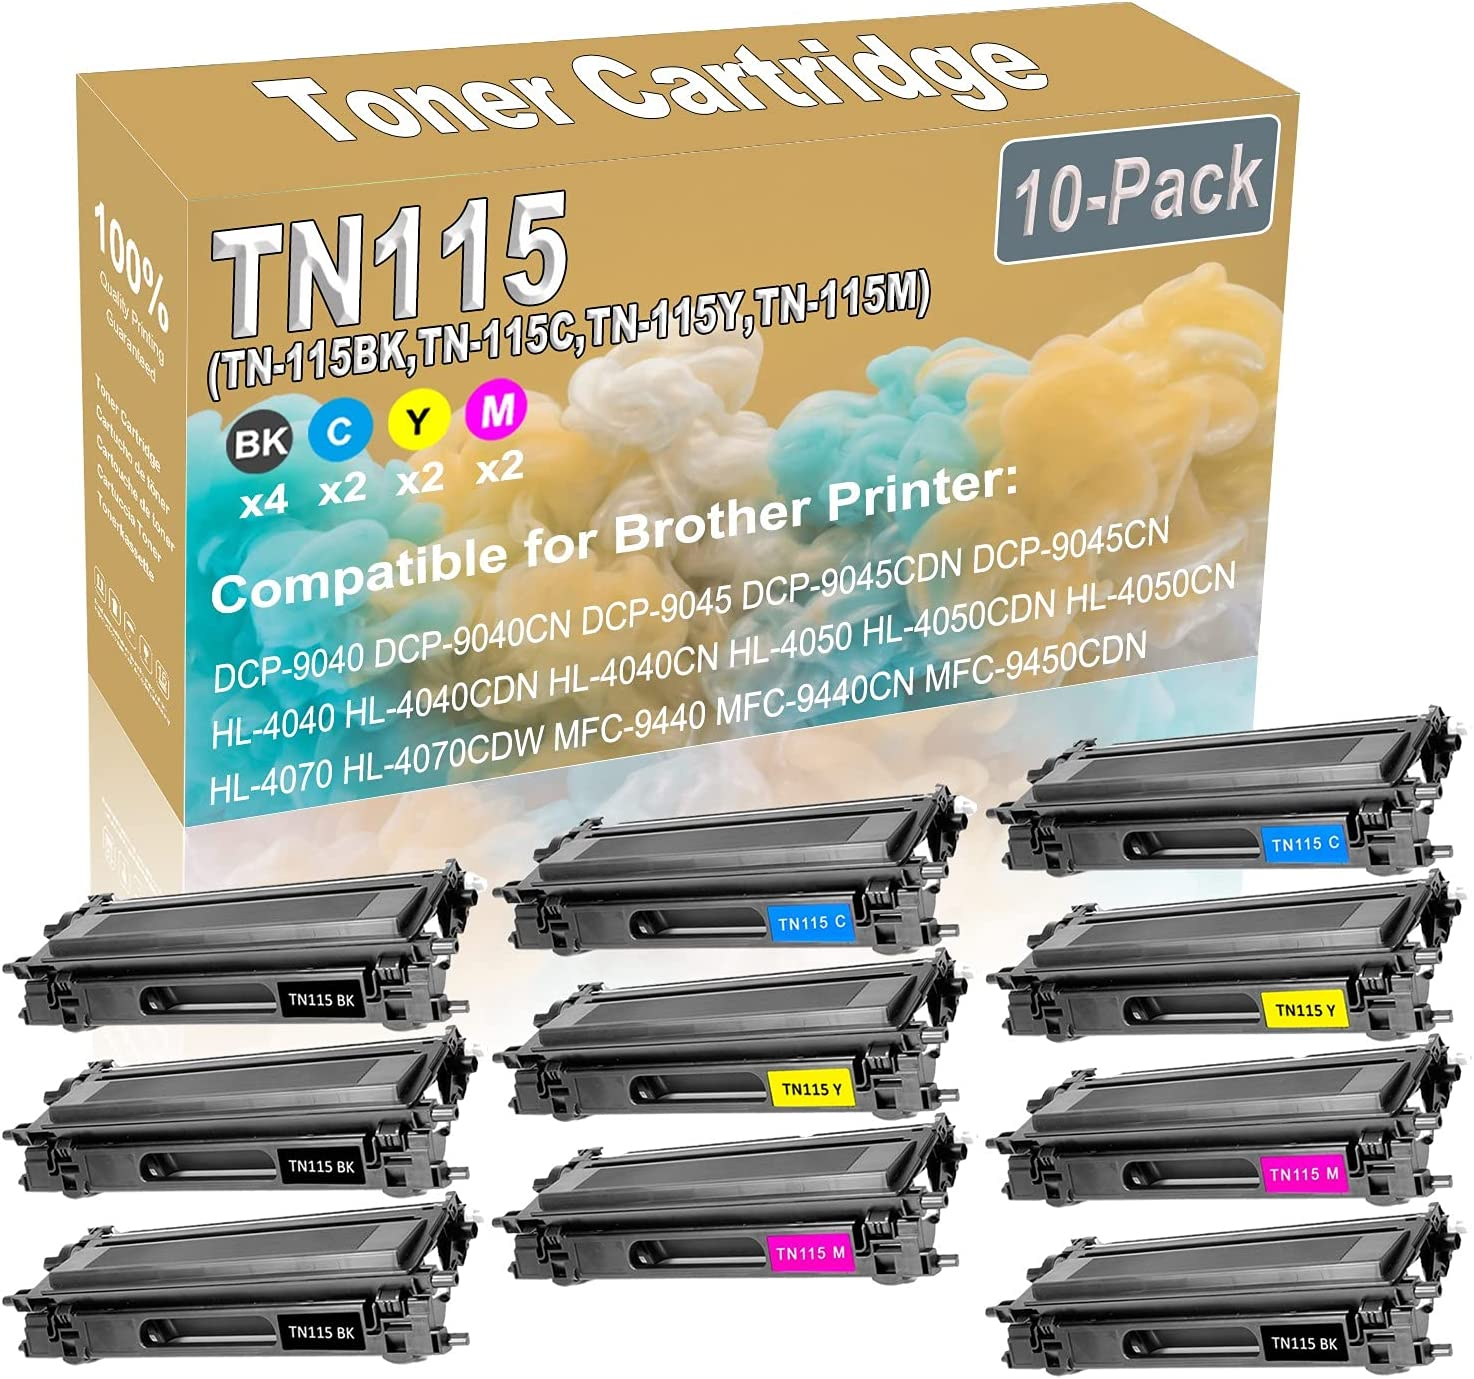 10-Pack 4BK+2C+2Y+2M Compatible DCP-9040 Columbus Mall Print DCP-9045 Sales of SALE items from new works Laser